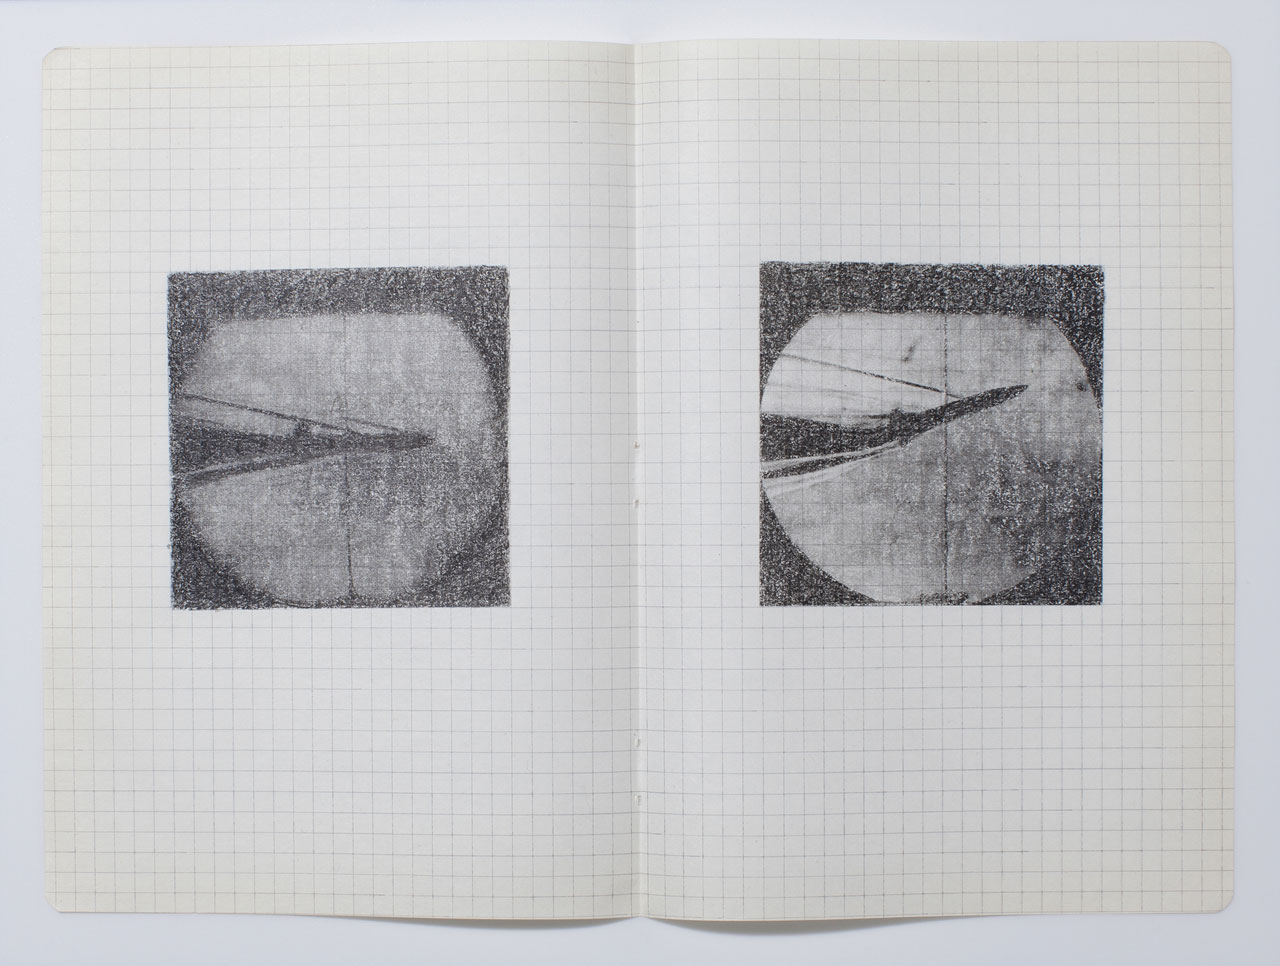 Hajra Waheed, KH-21, Notes 4/32, 2014, Xylene Transfer & Graphite on Paper. Image courtesy the artist.